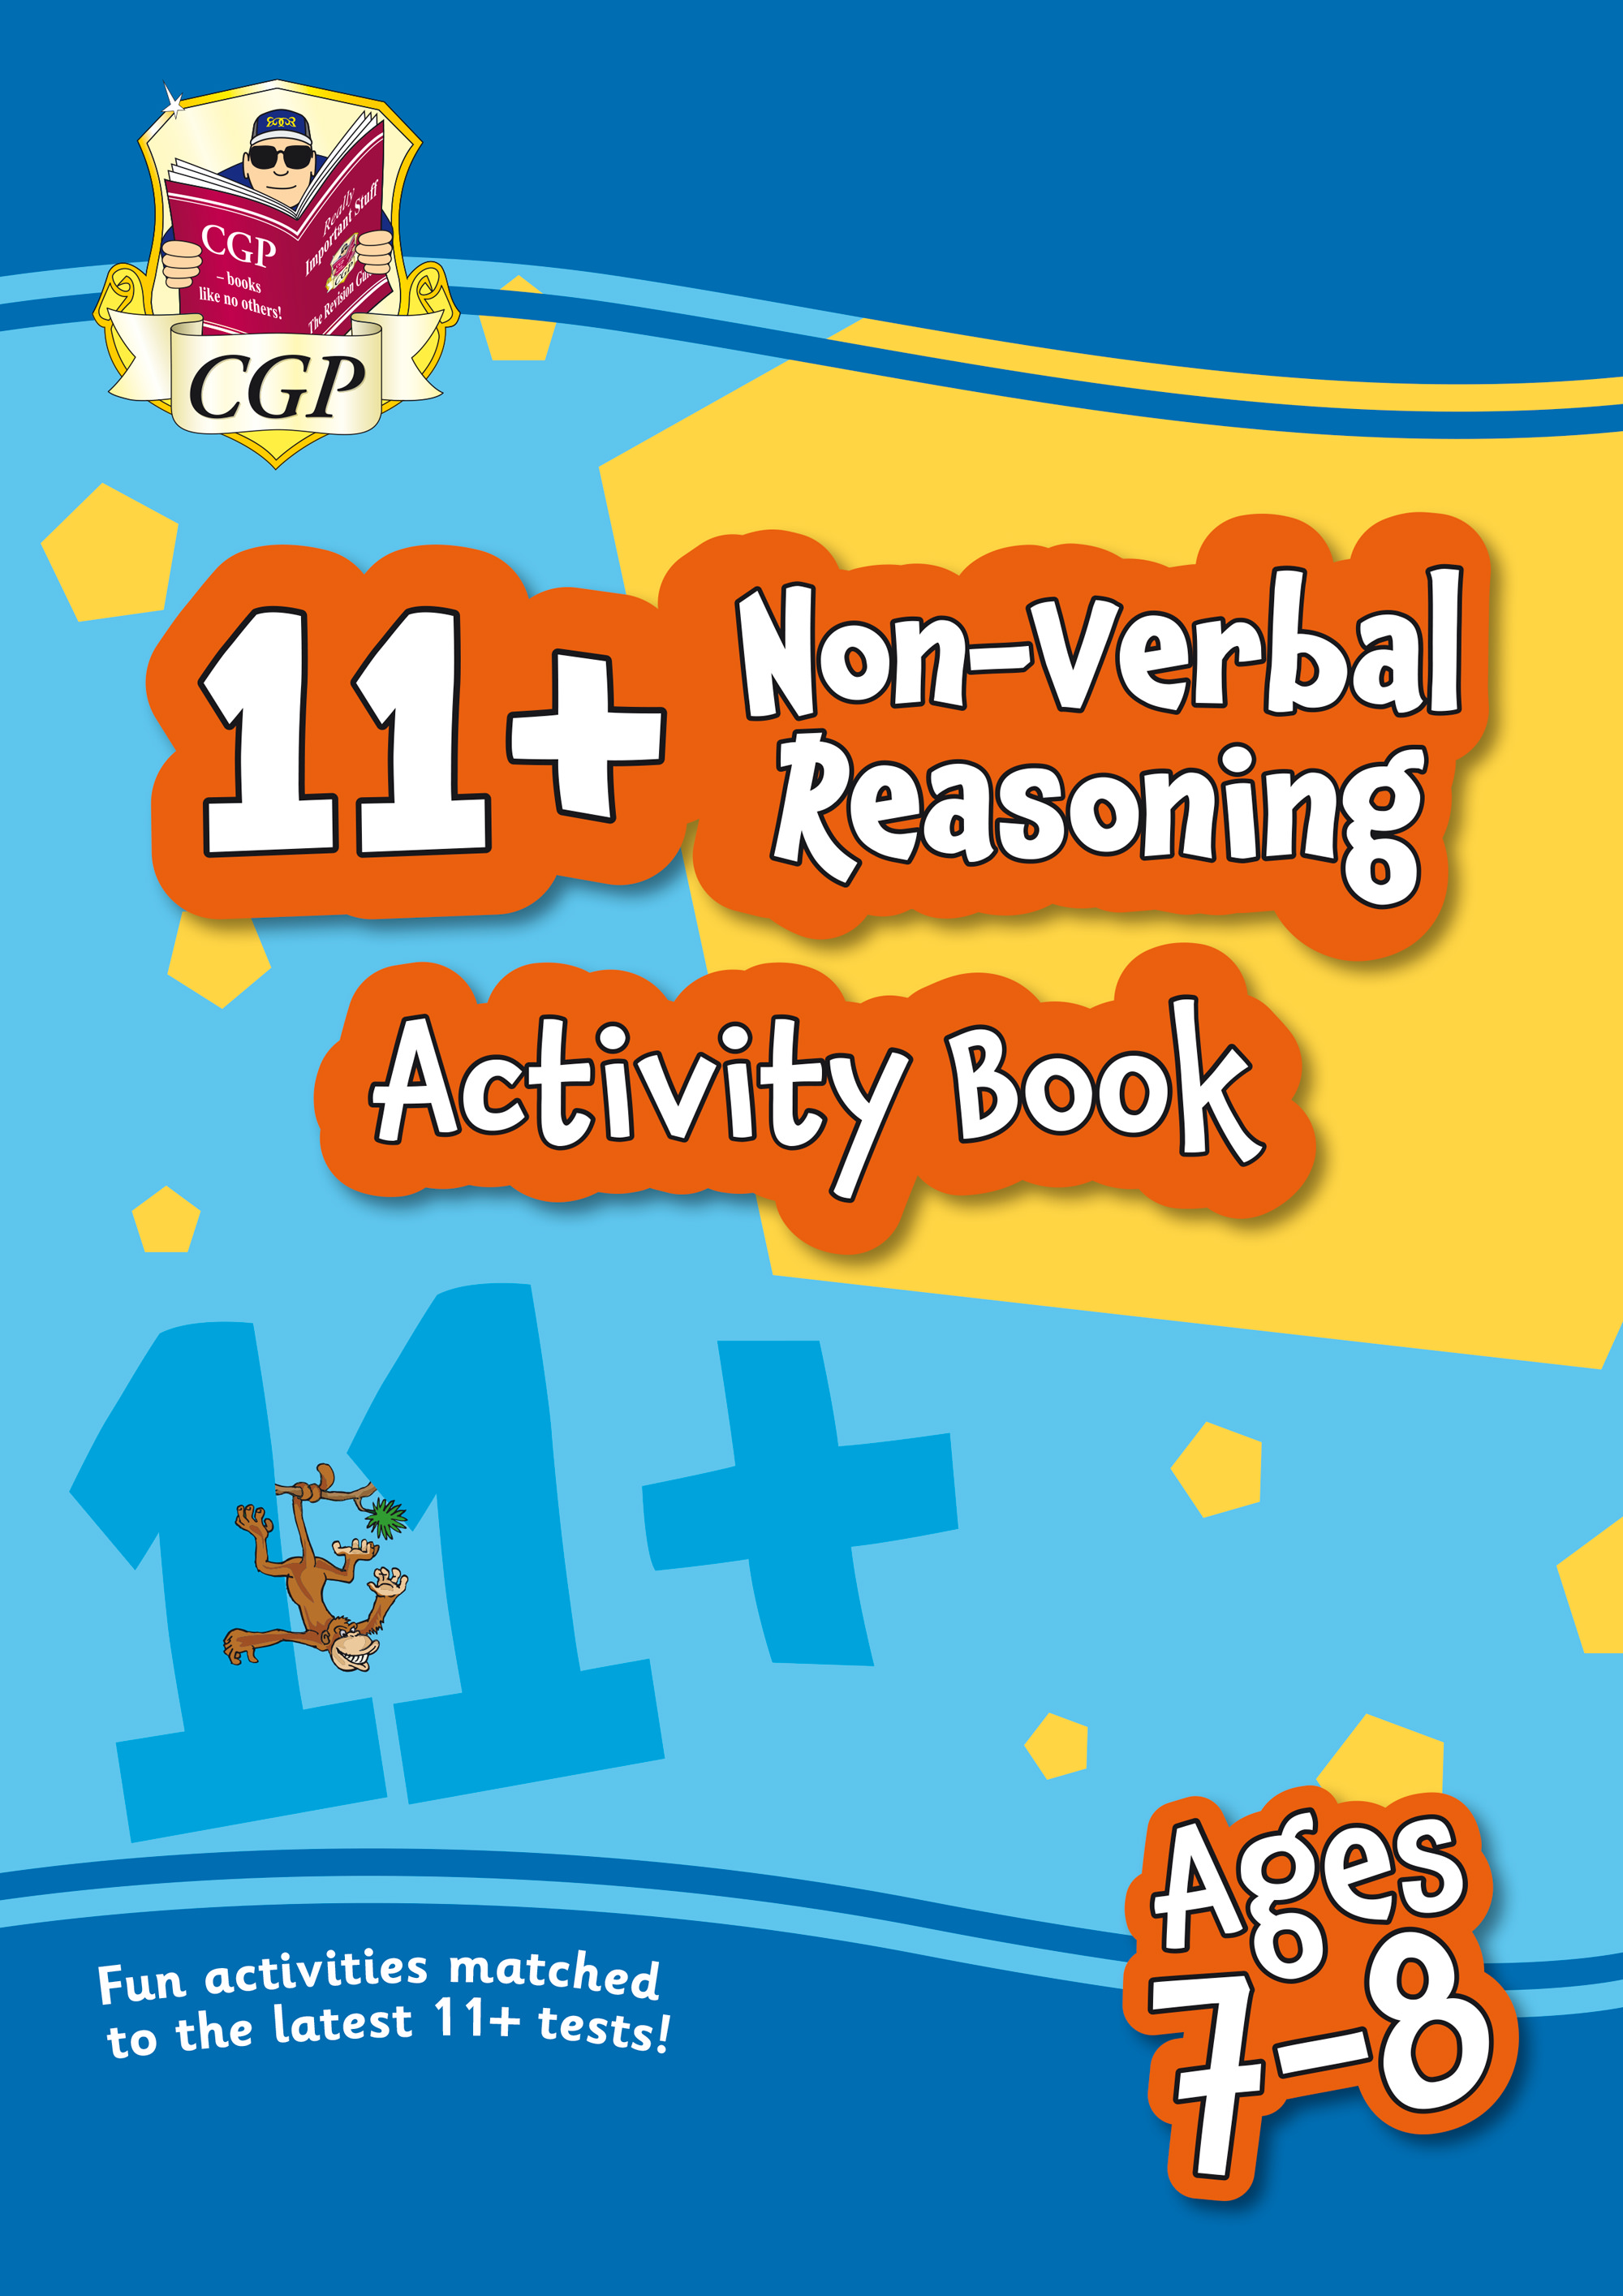 NF3QE1 - New 11+ Activity Book: Non-Verbal Reasoning - Ages 7-8